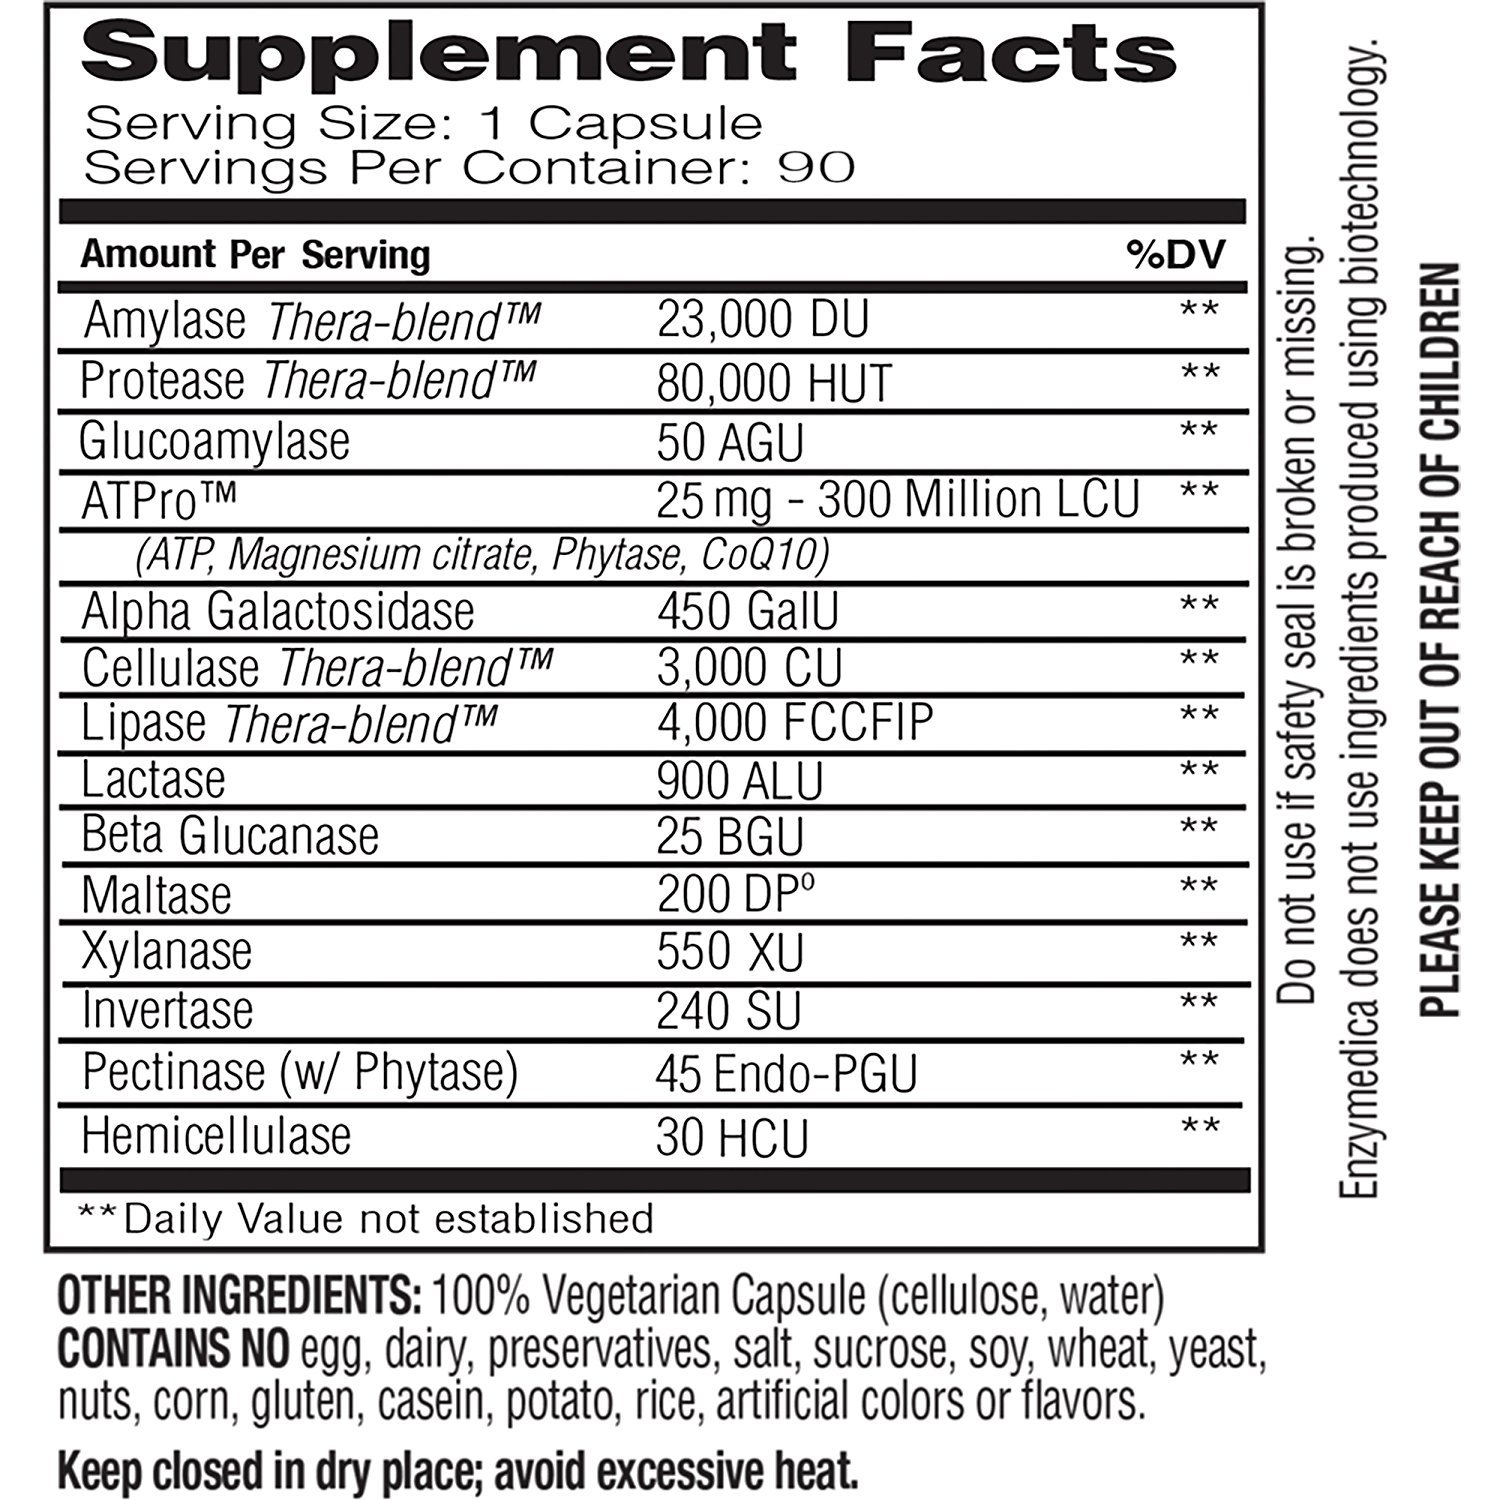 Enzymedica - Digest Gold with ATPro, High Potency Enzymes for Optimal Digestive Support, 90 Capsules (FFP) by Enzymedica (Image #3)